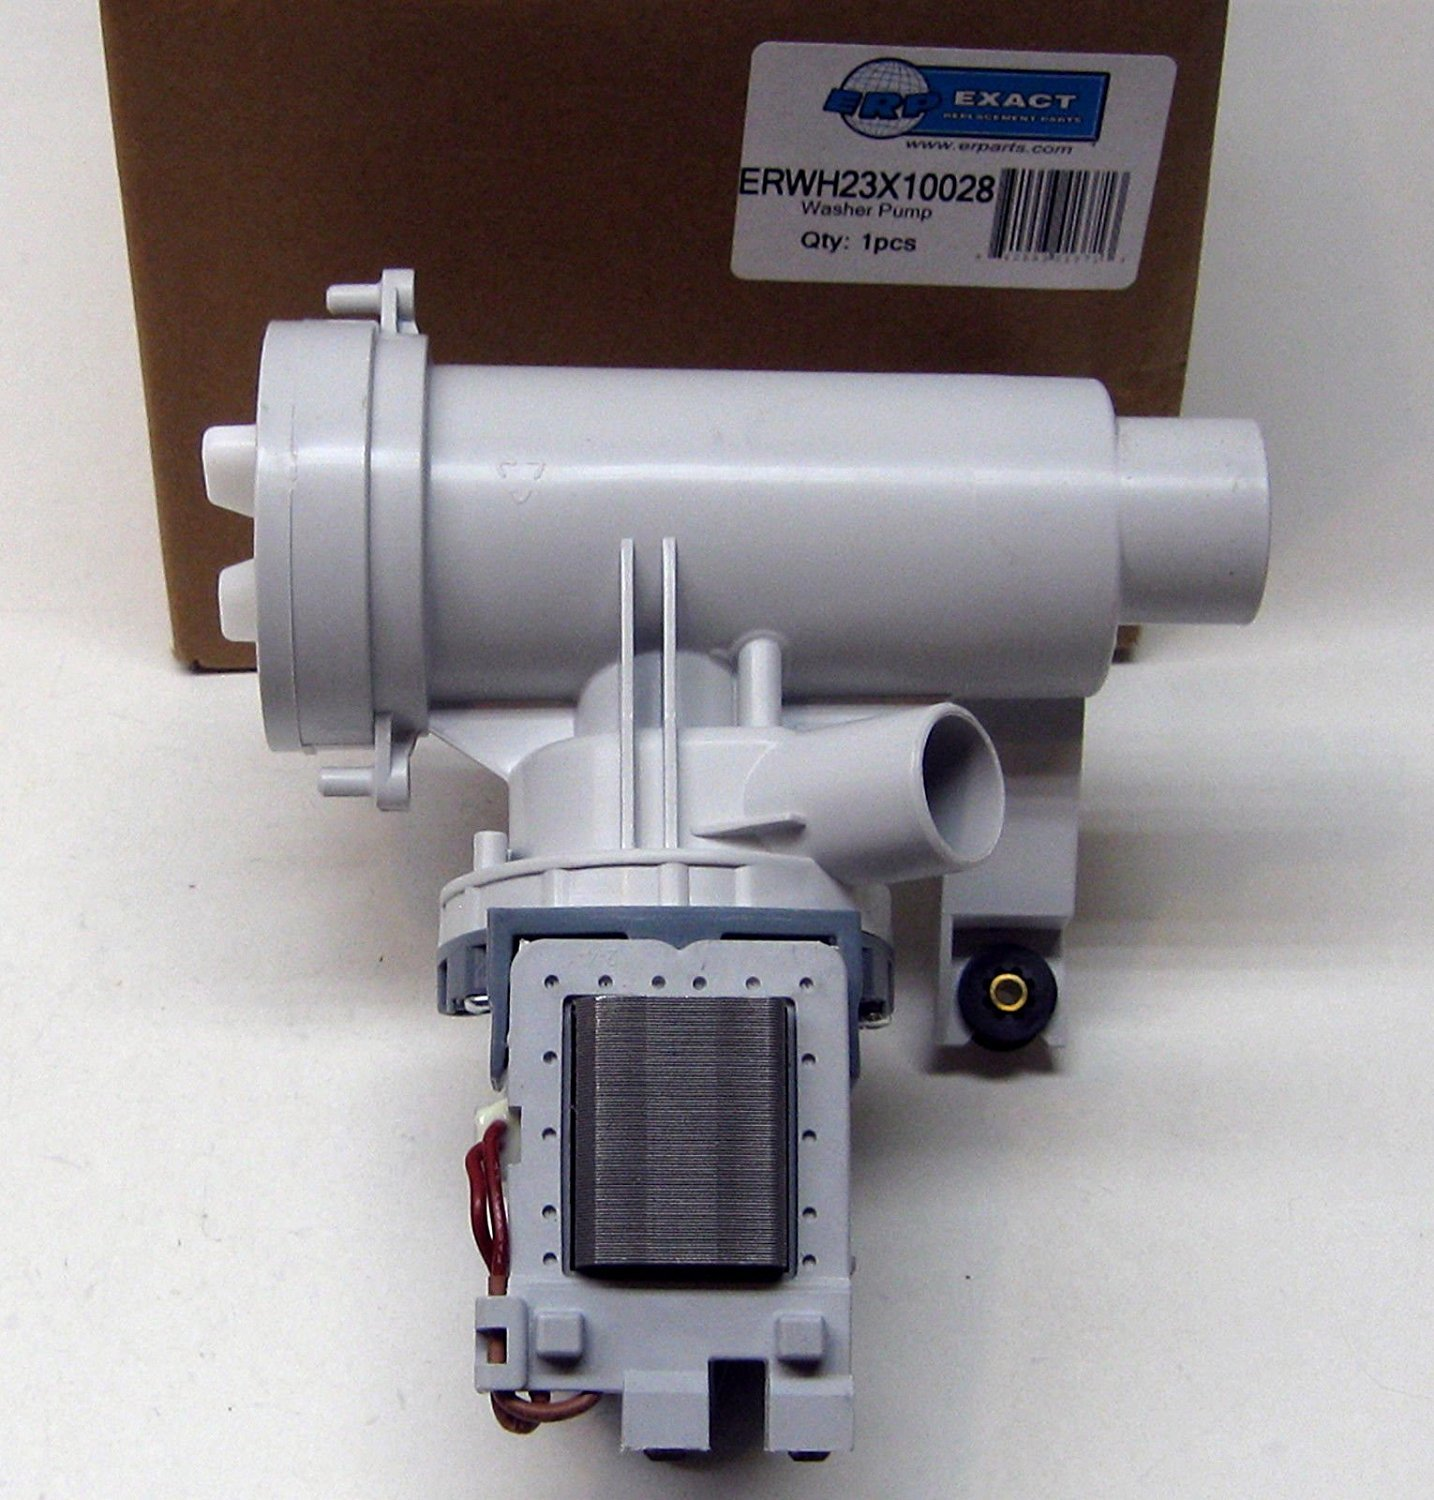 PS1766031 AP4324598 Washer Drain Pump /& Motor for General Electric WH23X10028